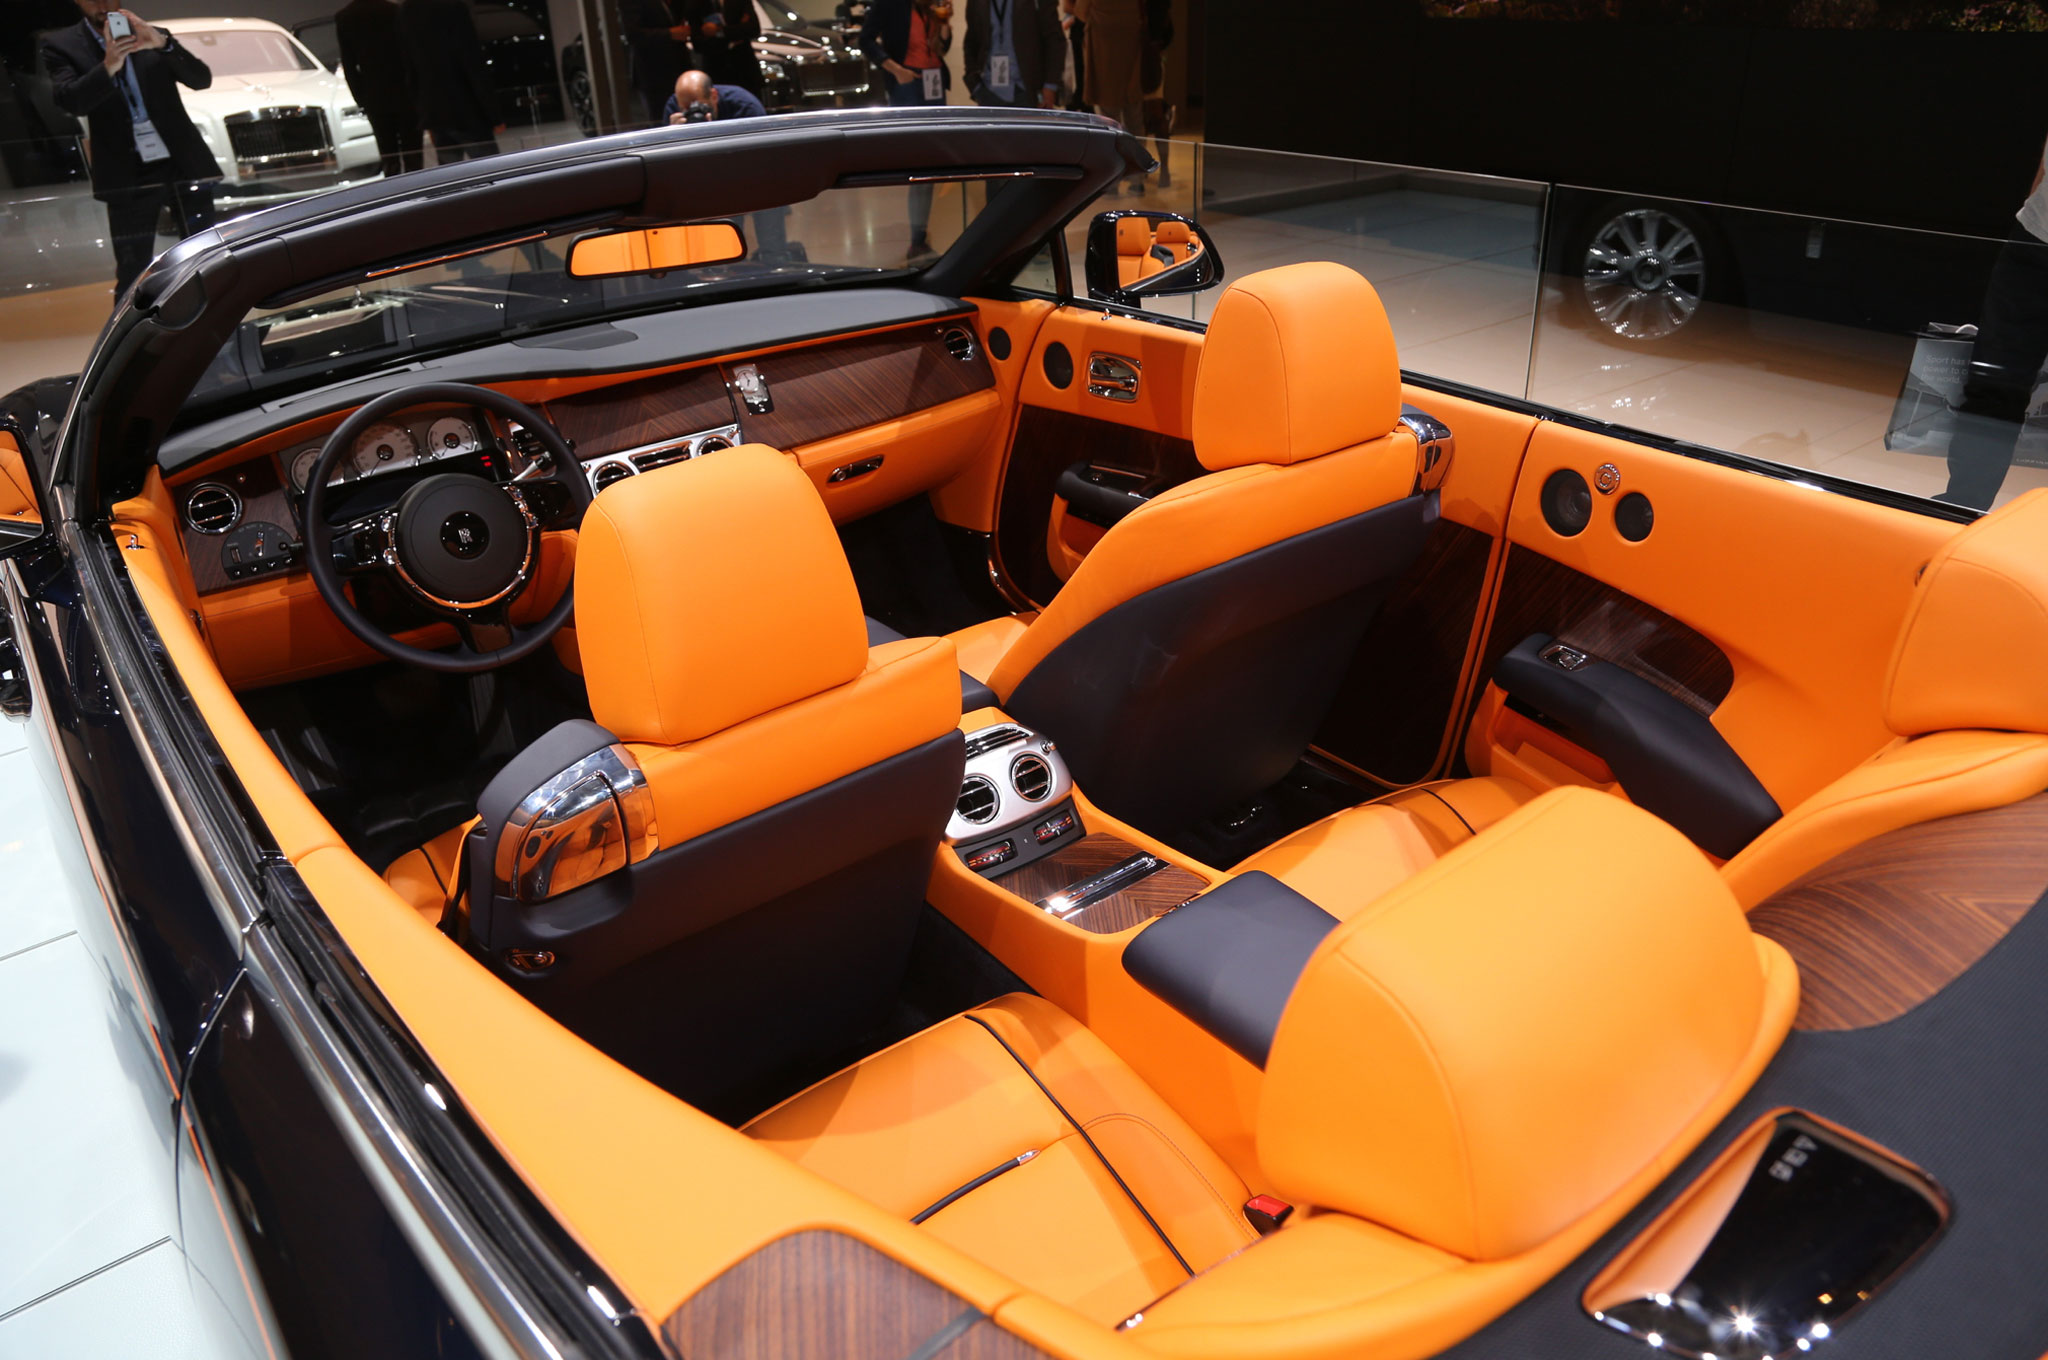 rolls-royce dawn: in depth with the gorgeous new convertible